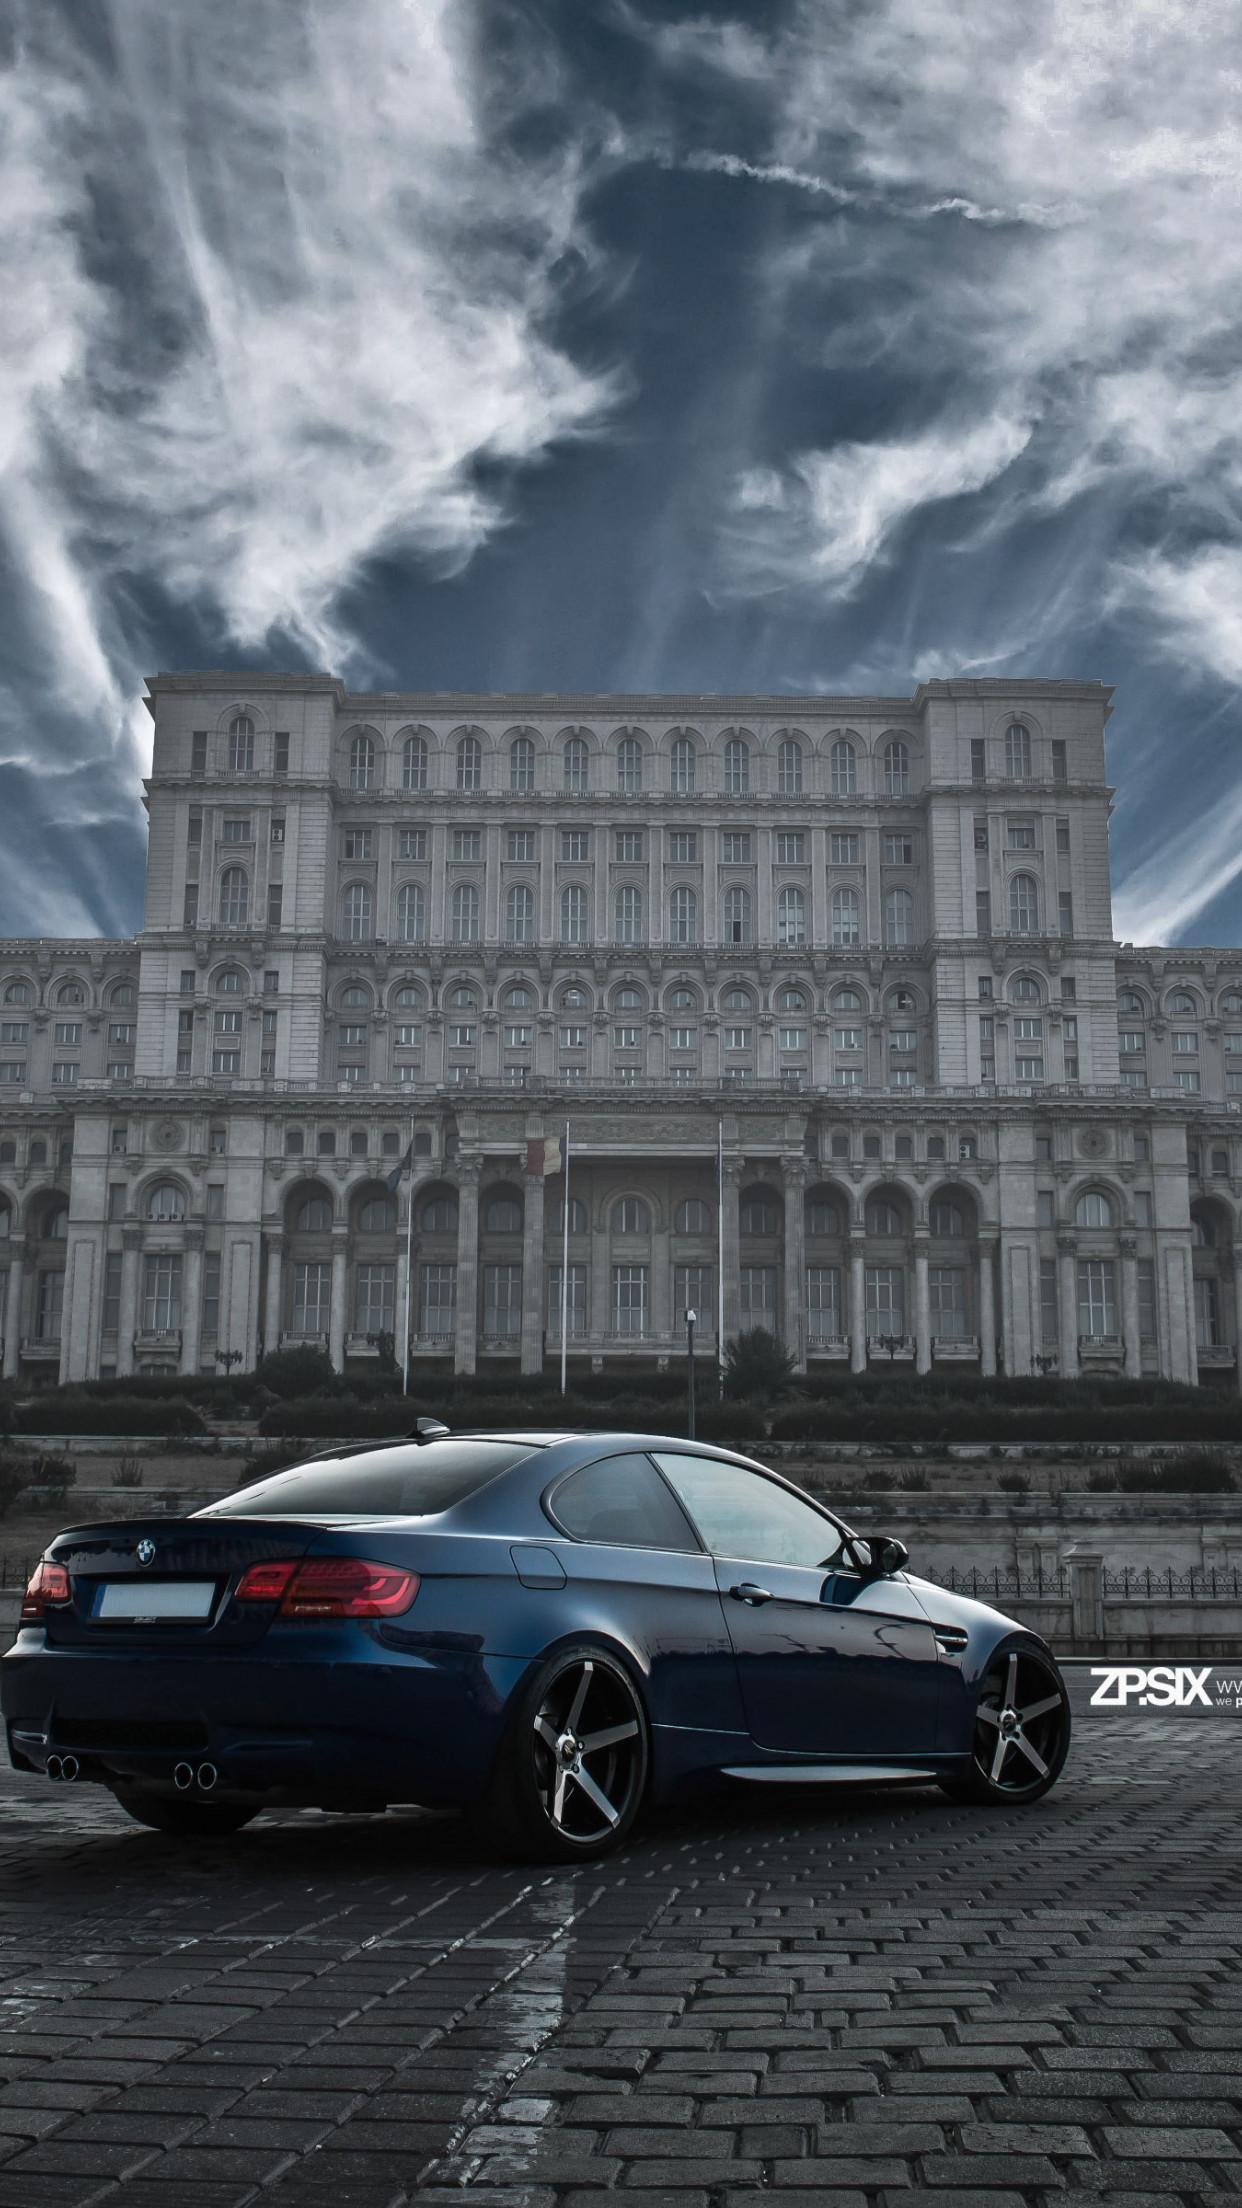 BMW E92 M3 in front of Palace of the Parliament wallpaper 1242x2208